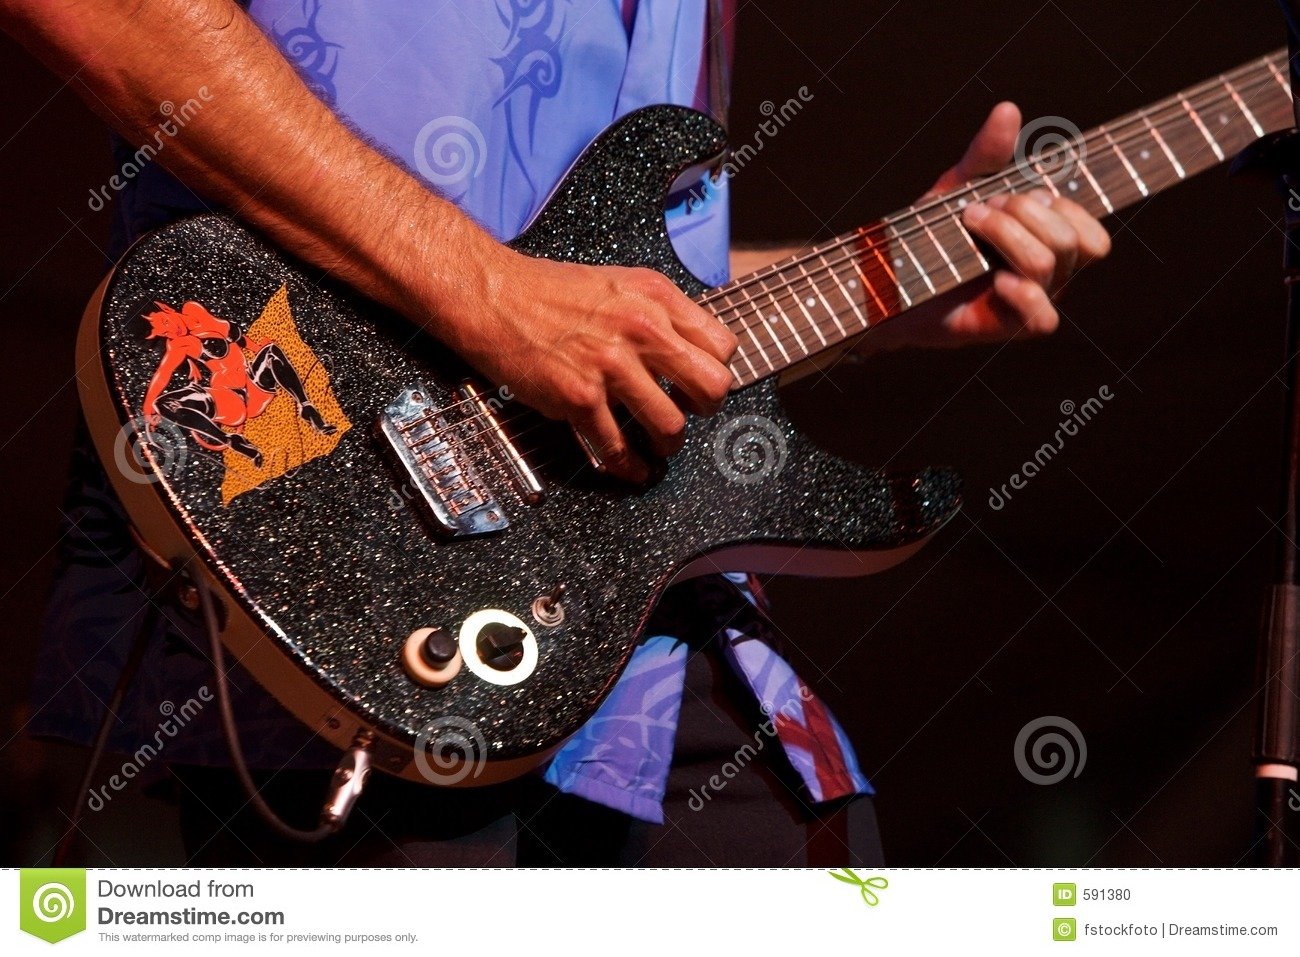 Rock And Roll Guitar Stock Photo - Image: 591380